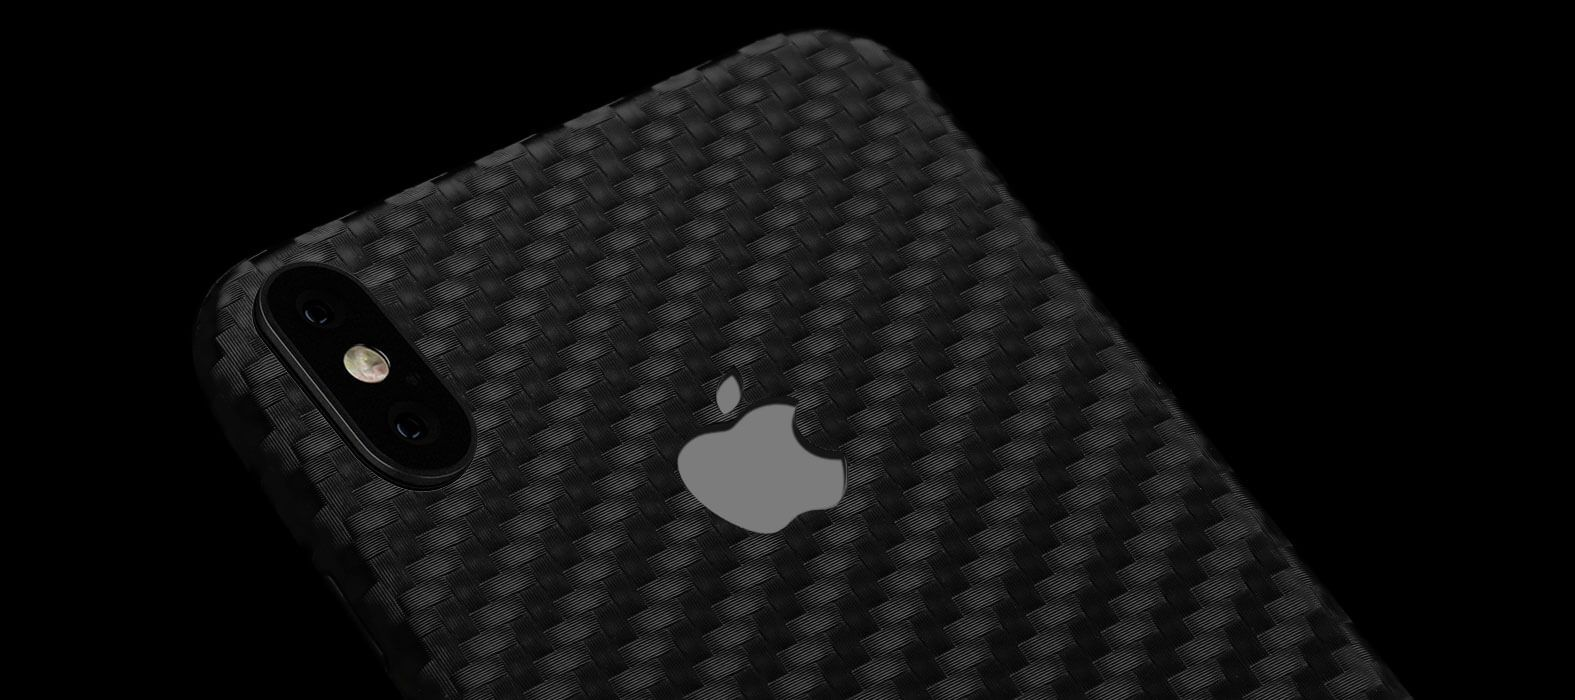 iPhone X Skins, Wraps & decals, Black Carbon Fiber